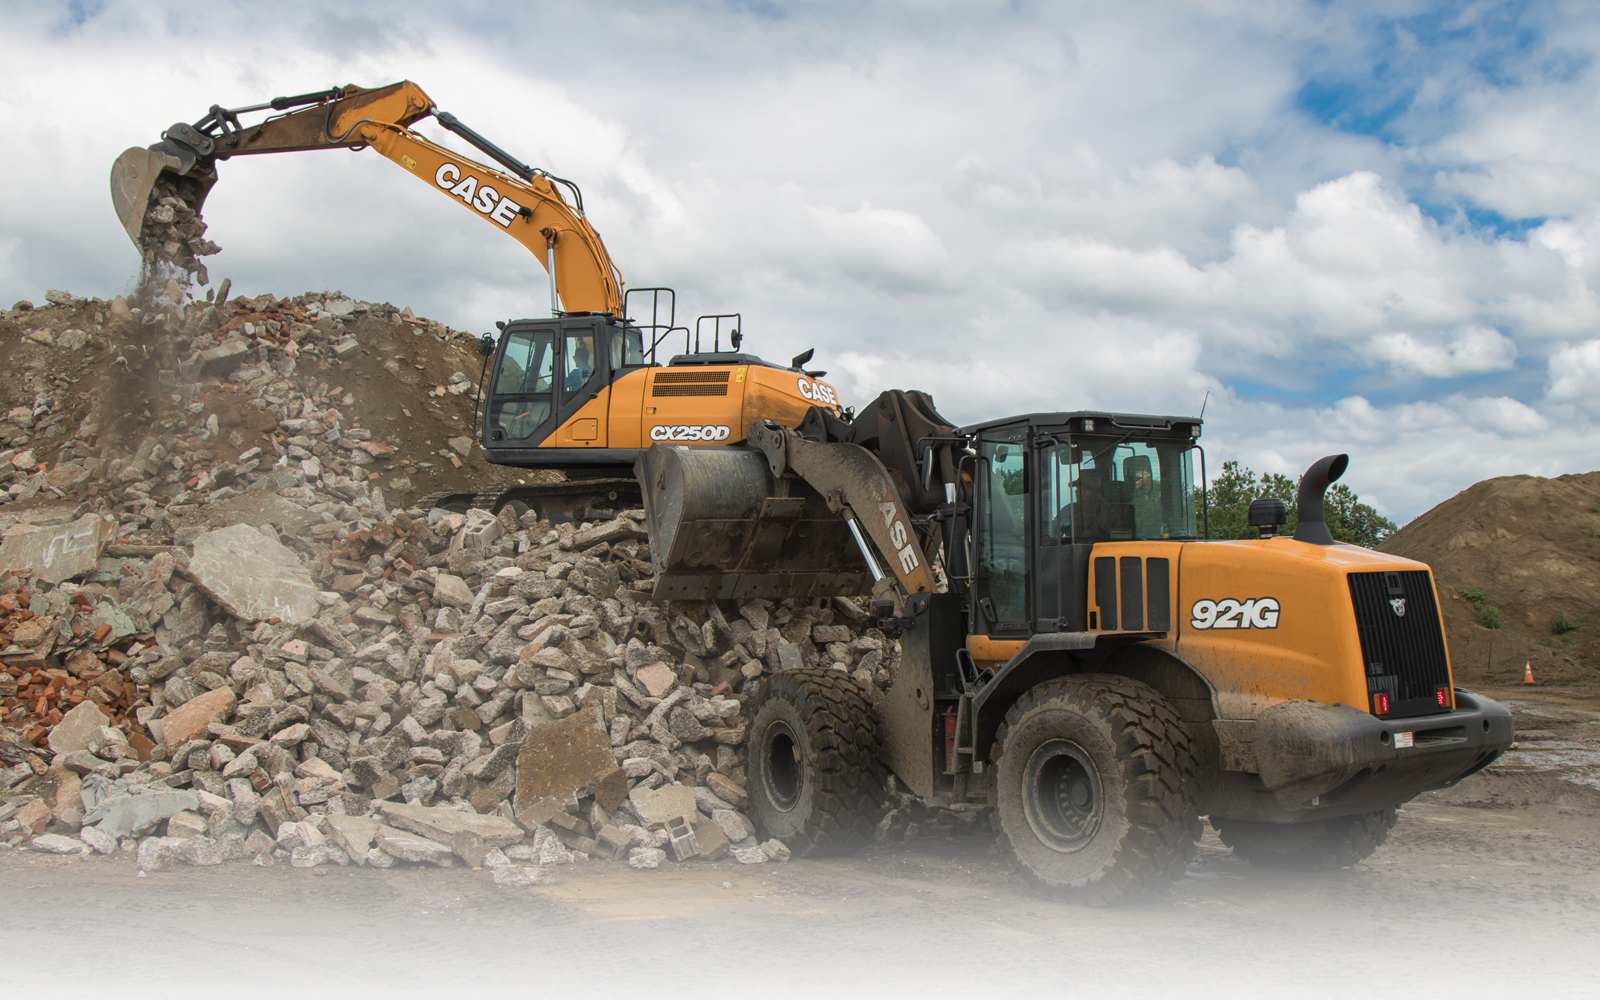 Construction Equipment Salvage Yards In Texas The Best